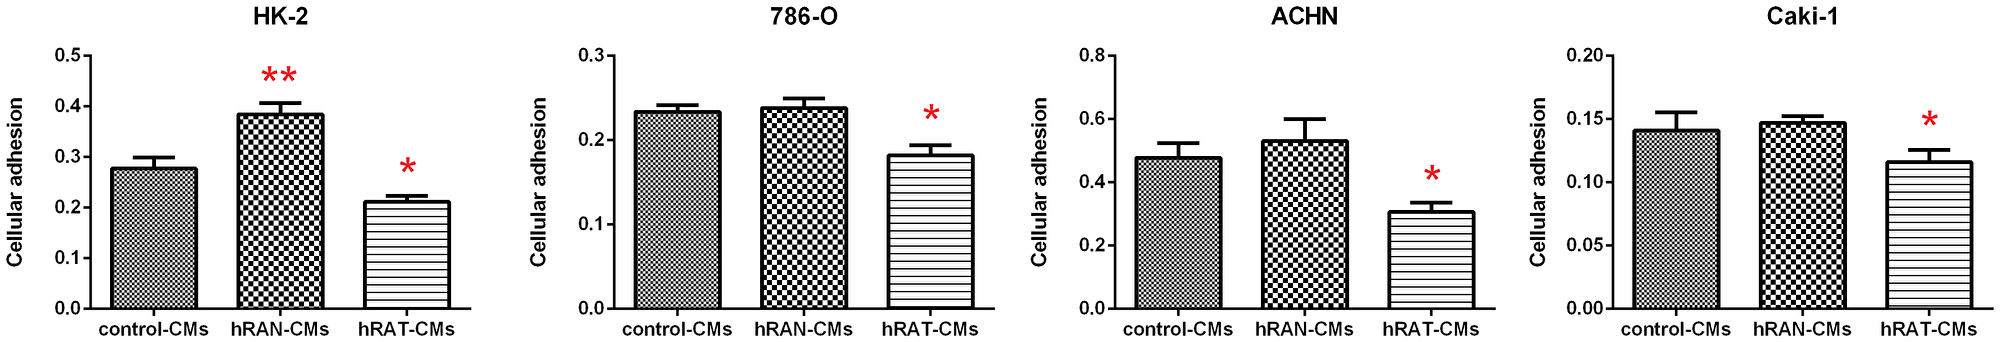 Effect of CMs from hRAN and hRAT on HK-2, 786-O, ACHN and Caki-1 cell lines attachment.